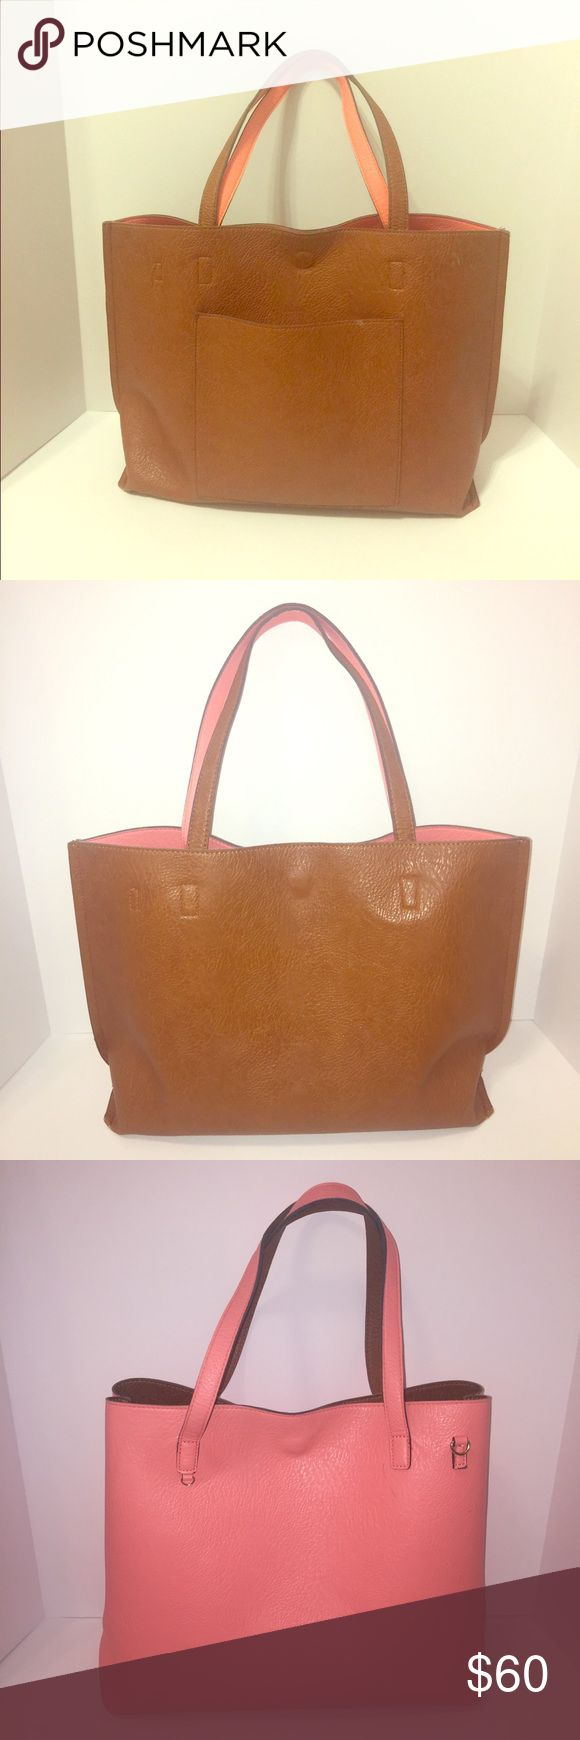 Urban Outfitters vegan leather reversible tote bag Beautiful and spacious tote bag reversible for both a brown and a peach/coral look! Comes with a detachable crossbody strap and pouch. Urban Outfitters Bags Totes